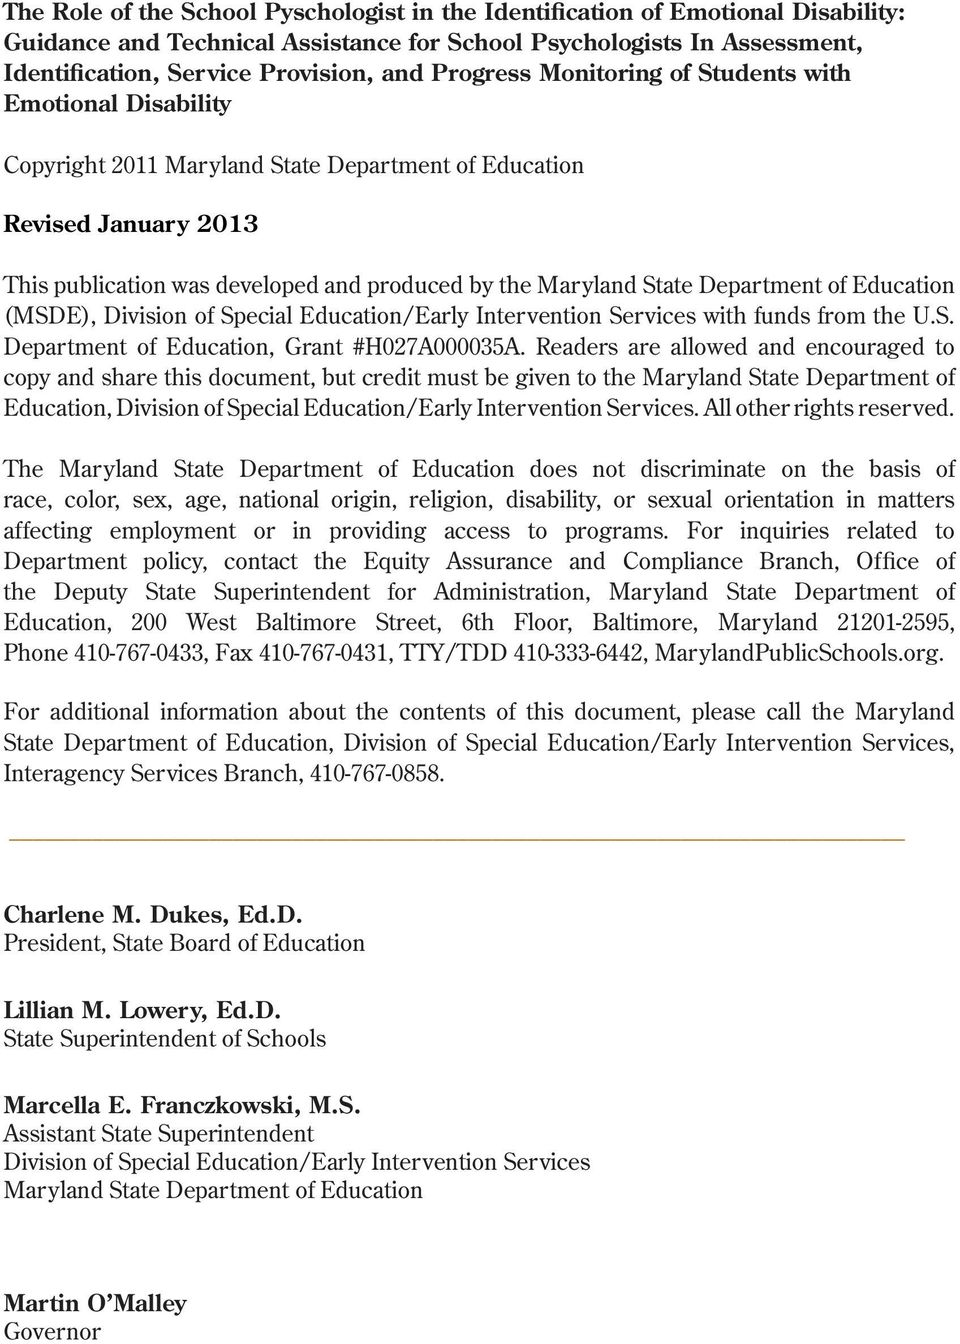 Department of Education (MSDE), Division of Special Education/Early Intervention Services with funds from the U.S. Department of Education, Grant #H027A000035A.